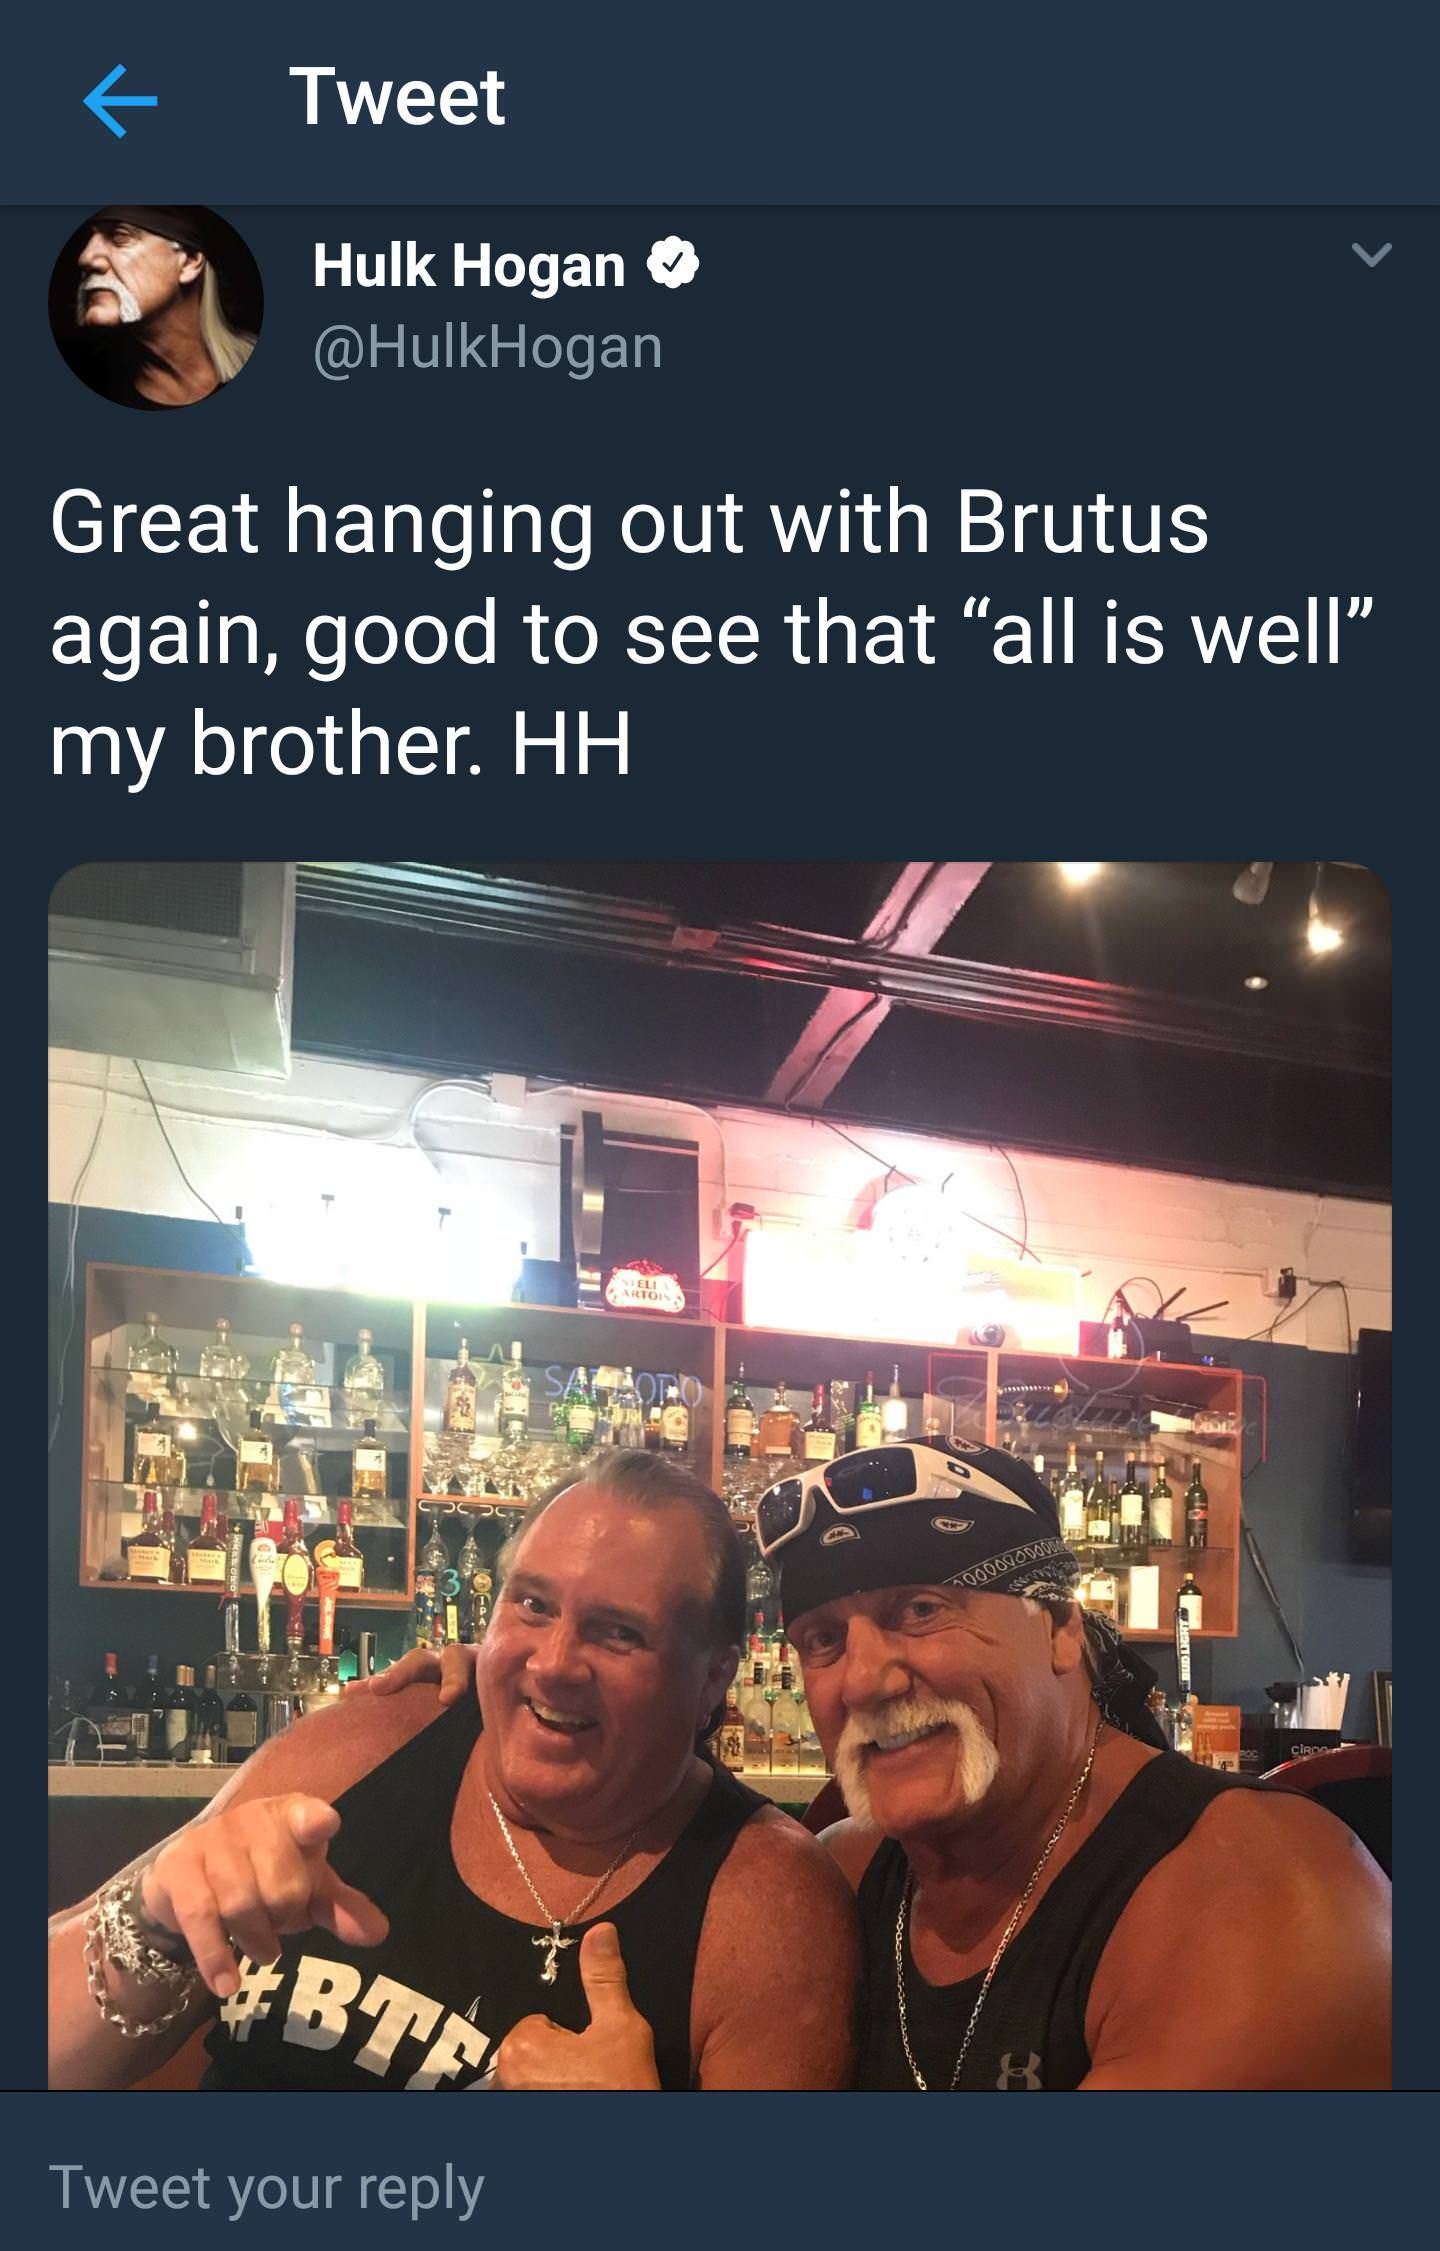 Hulk Hogan Has Totally Confused Me About How Brutus The Barber